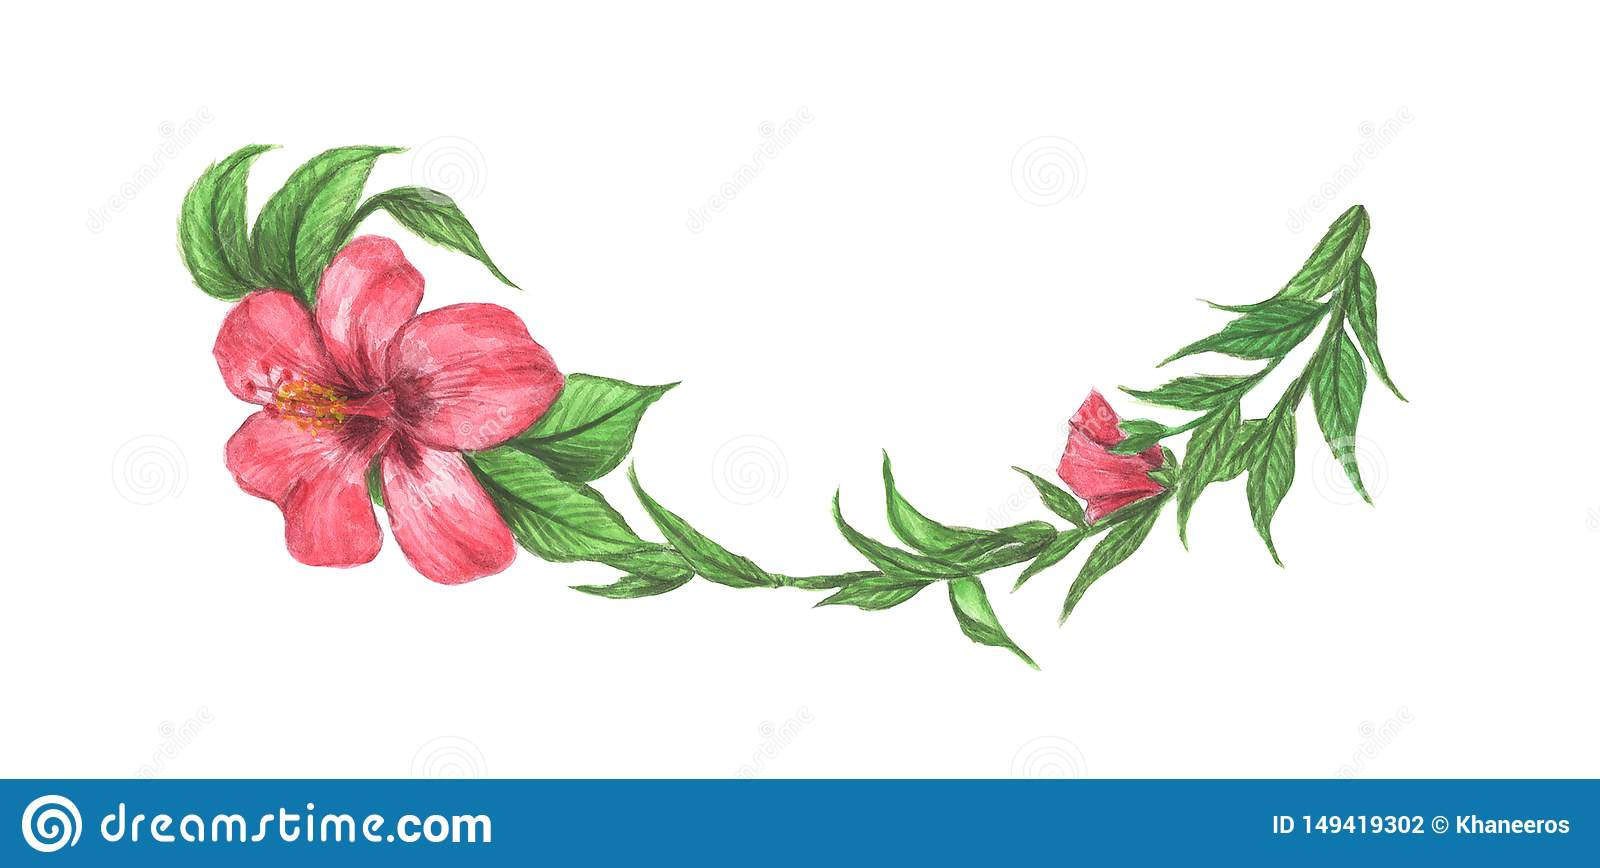 Hibiscus flower and leaves. Line borders, laurels and text divider. Watercolor illustration